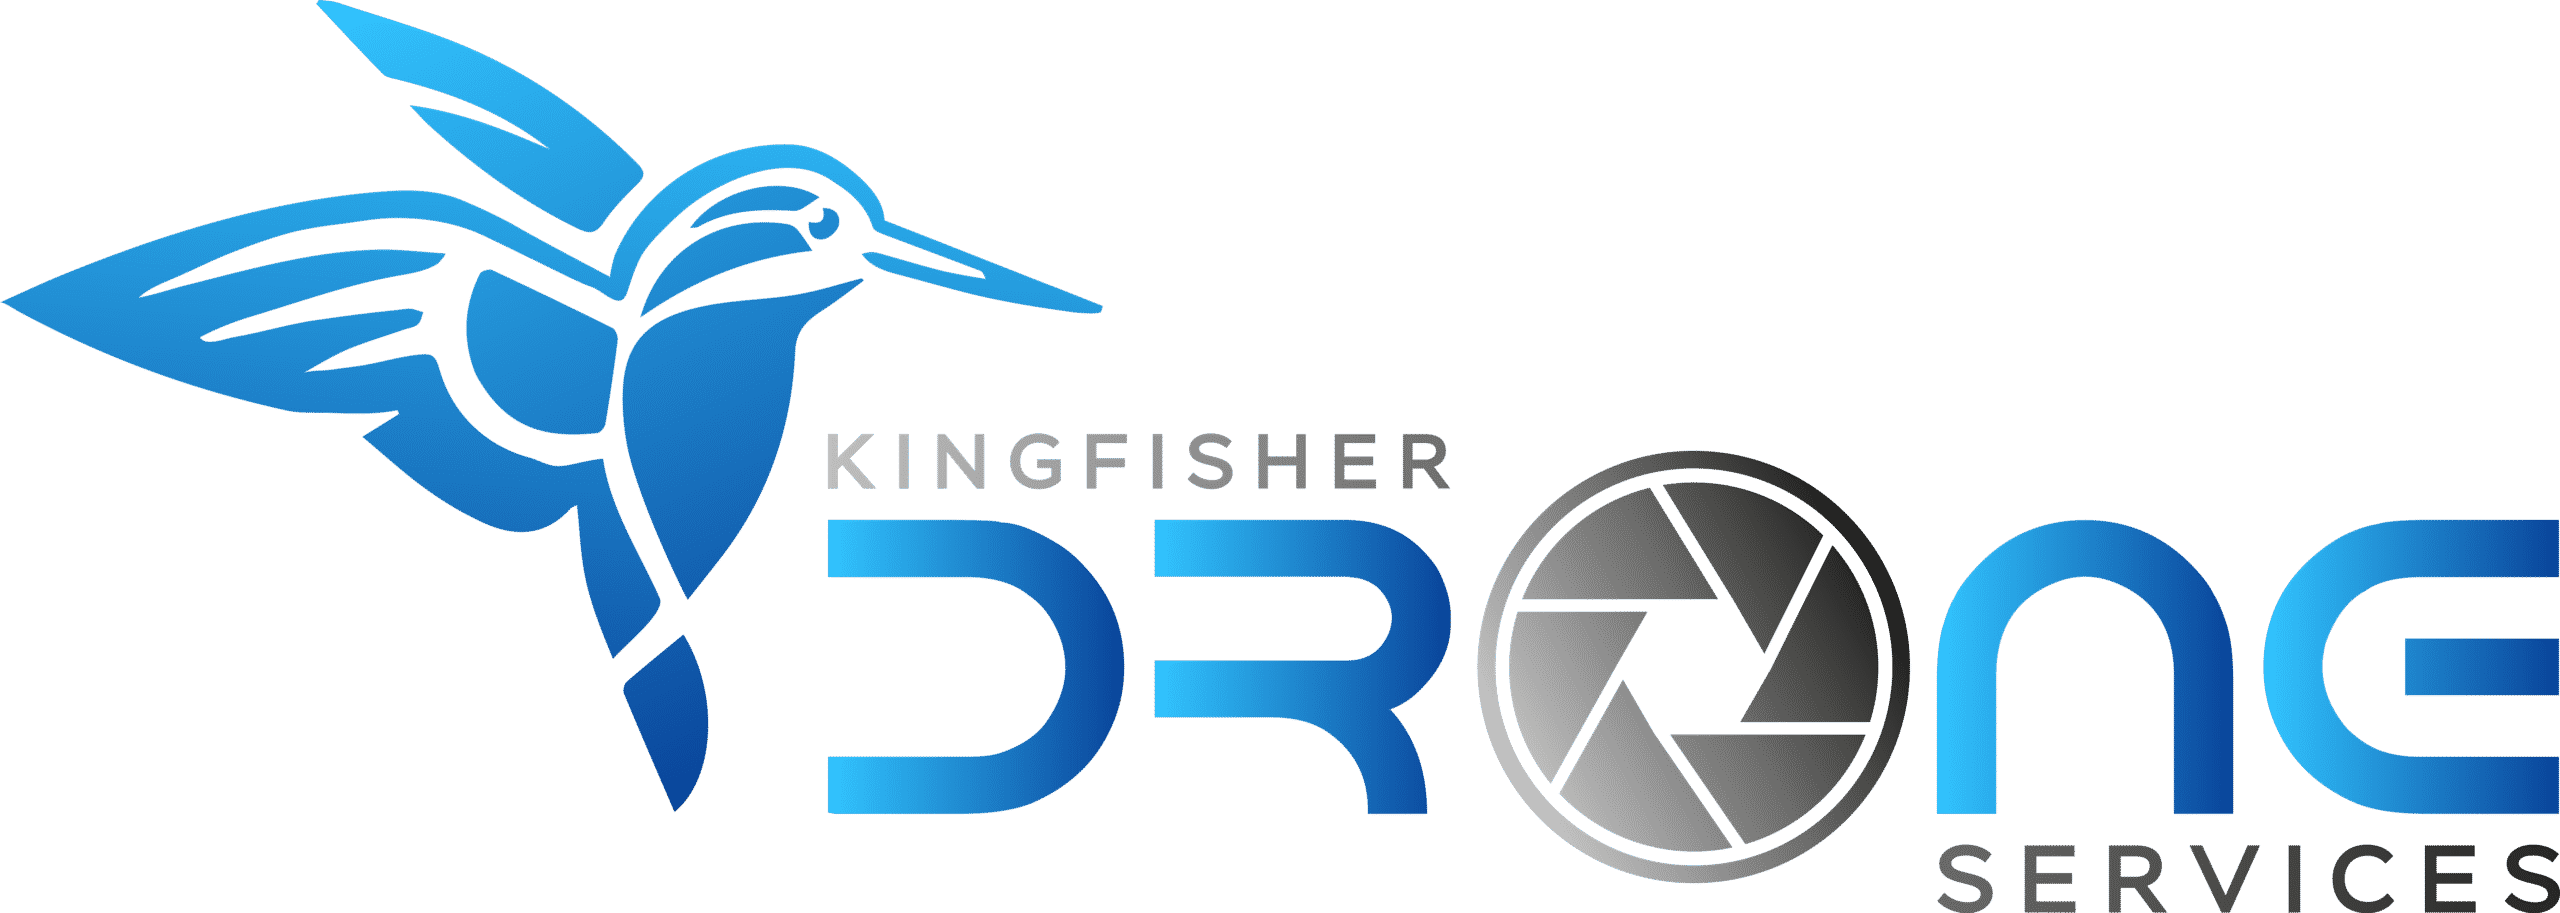 Kingfisher Drone Services logo